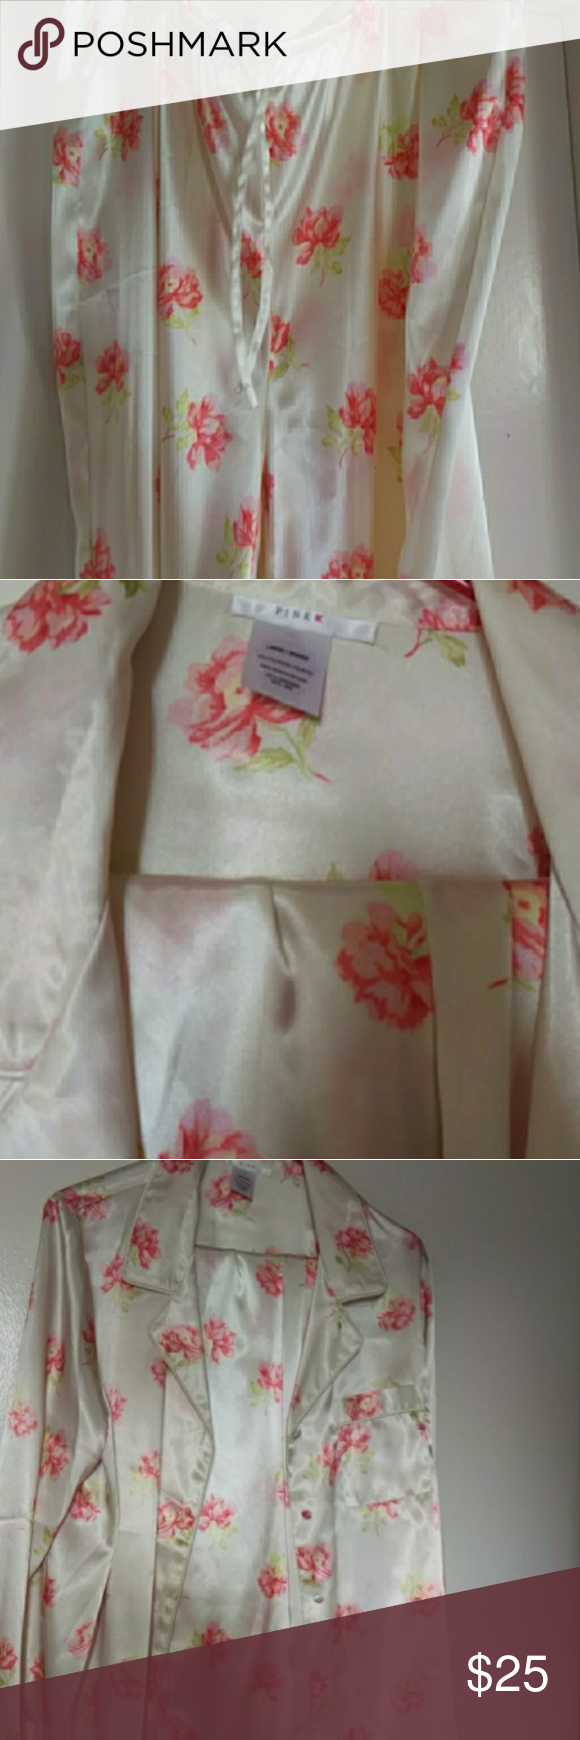 46235d0931 Pink satin pajama pants set Pink by Kmart button down champagne colored  satin pajama set with pink flowers size large pink by kmart Intimates    Sleepwear